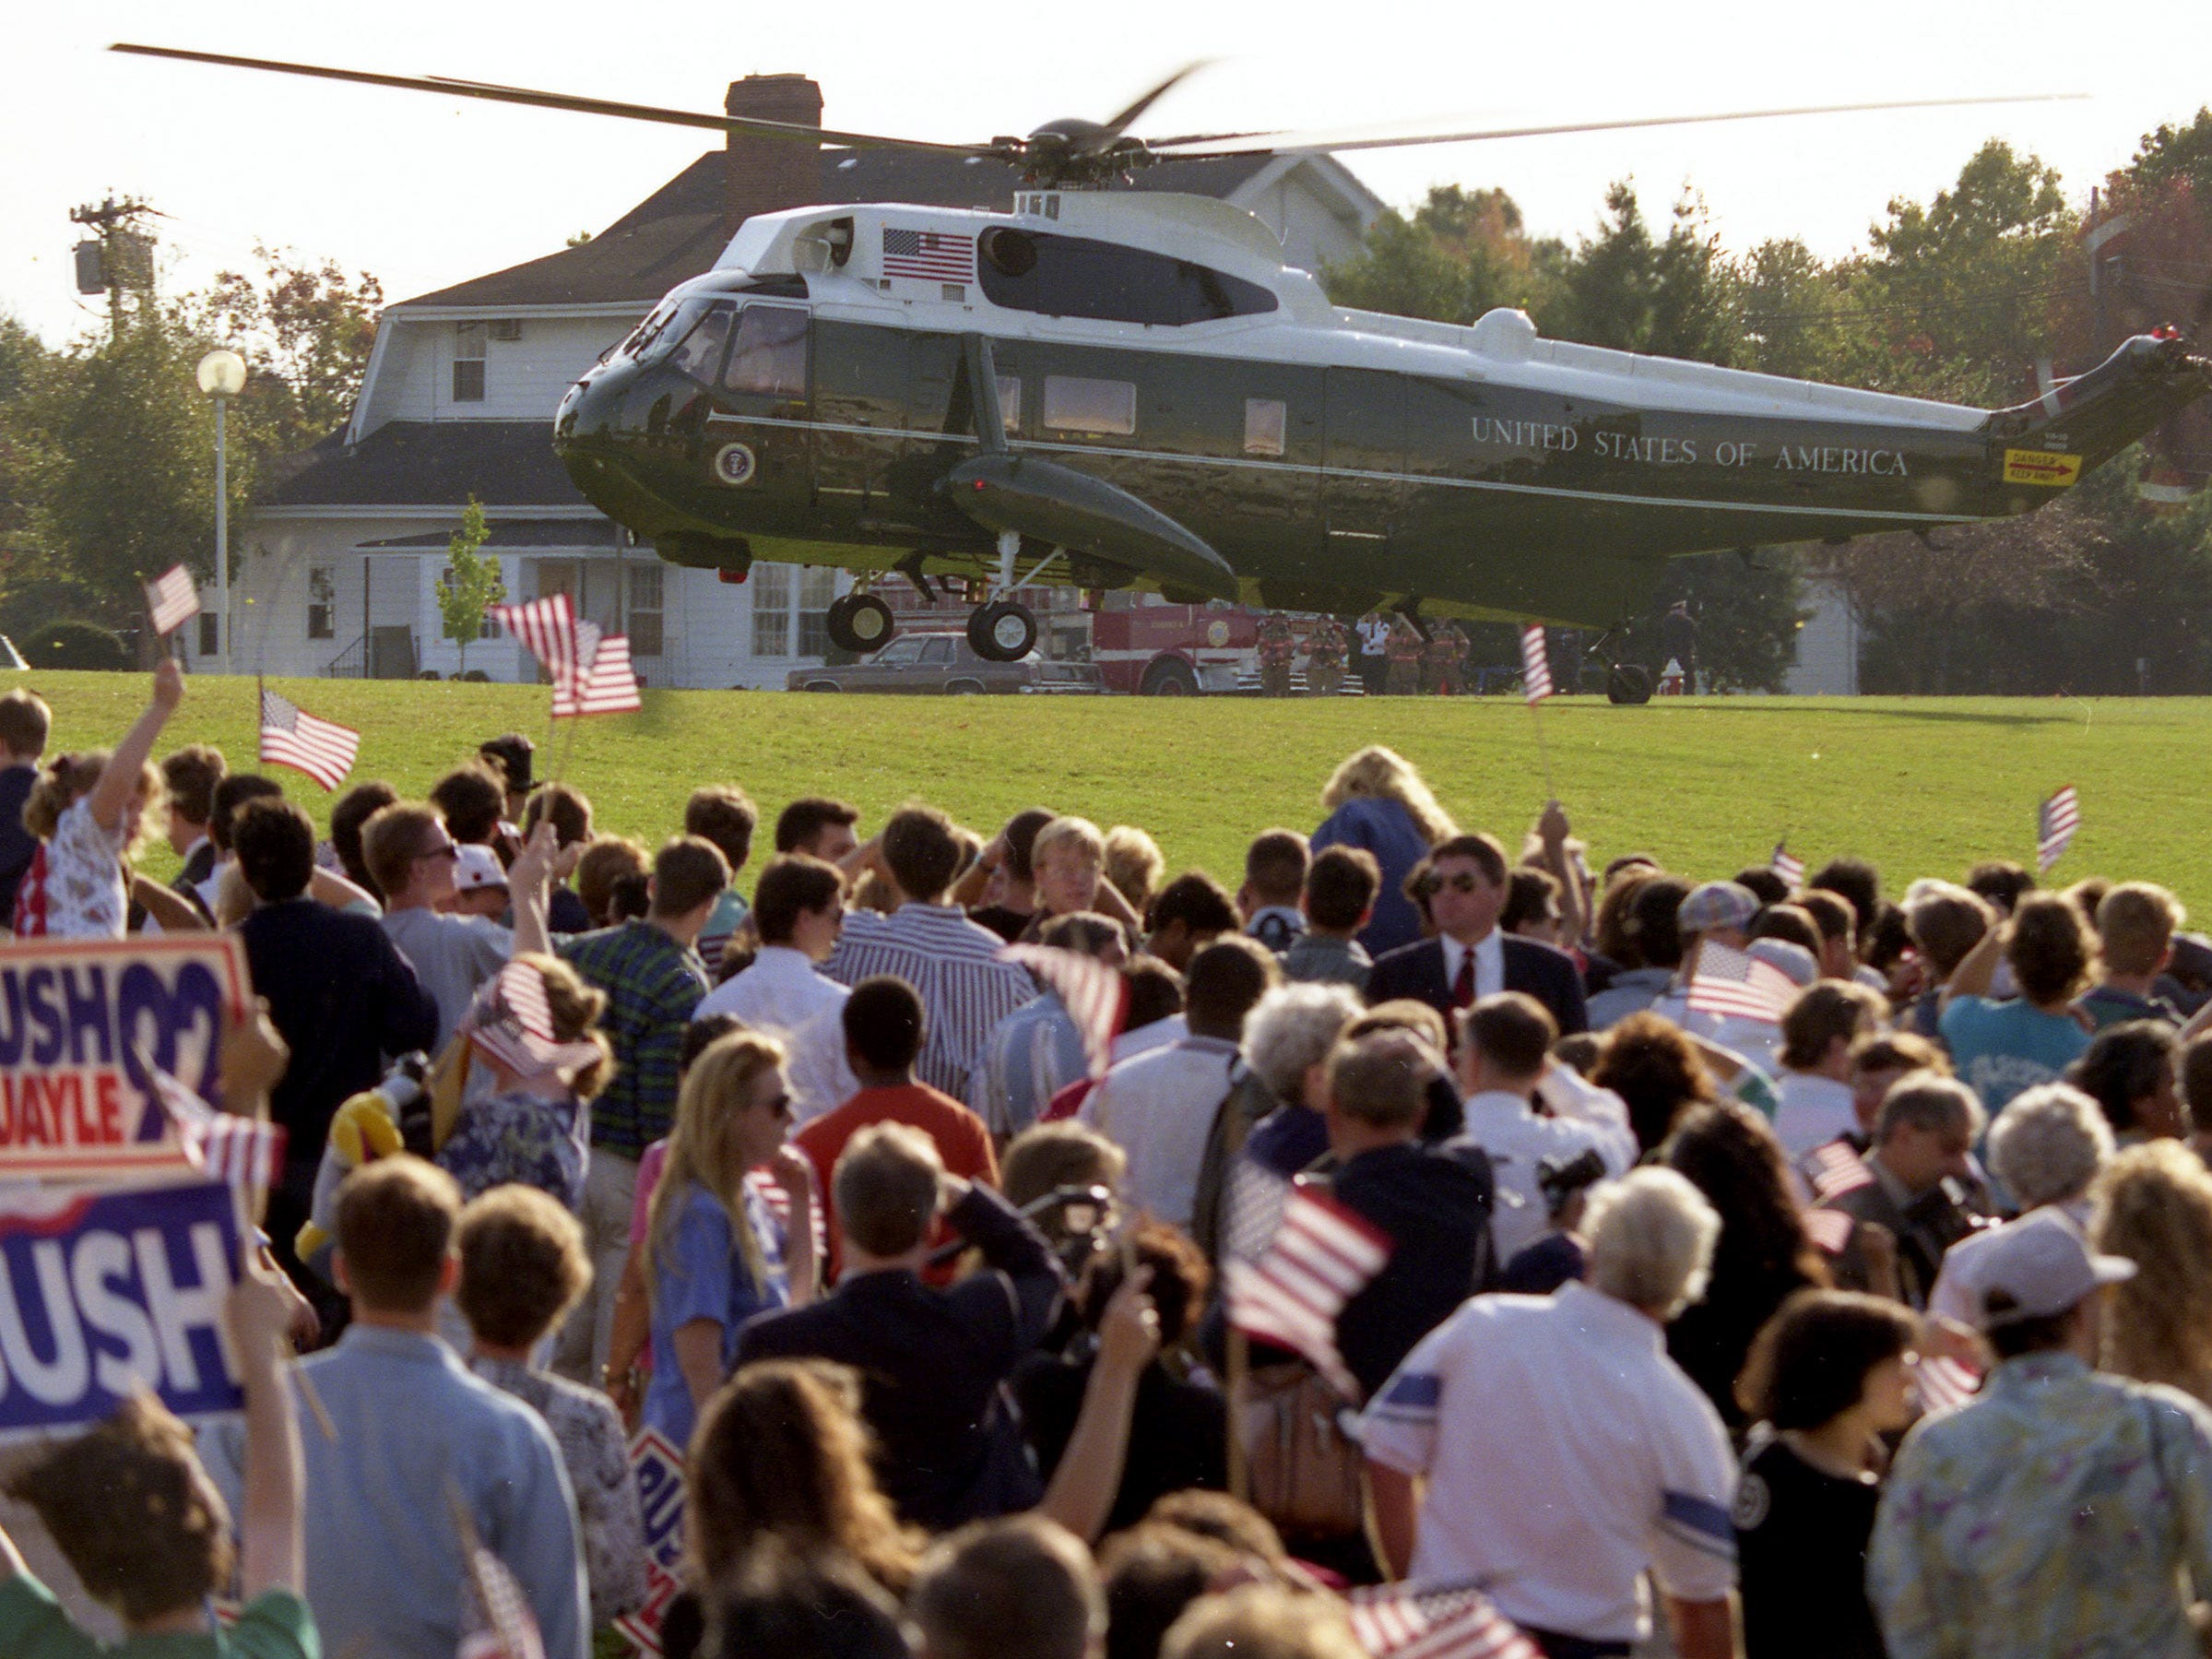 Marine One with President George HW Bush onboard arrives for a campaign rally at Middlesex County College in Edison, NJ, on October 16, 1992.